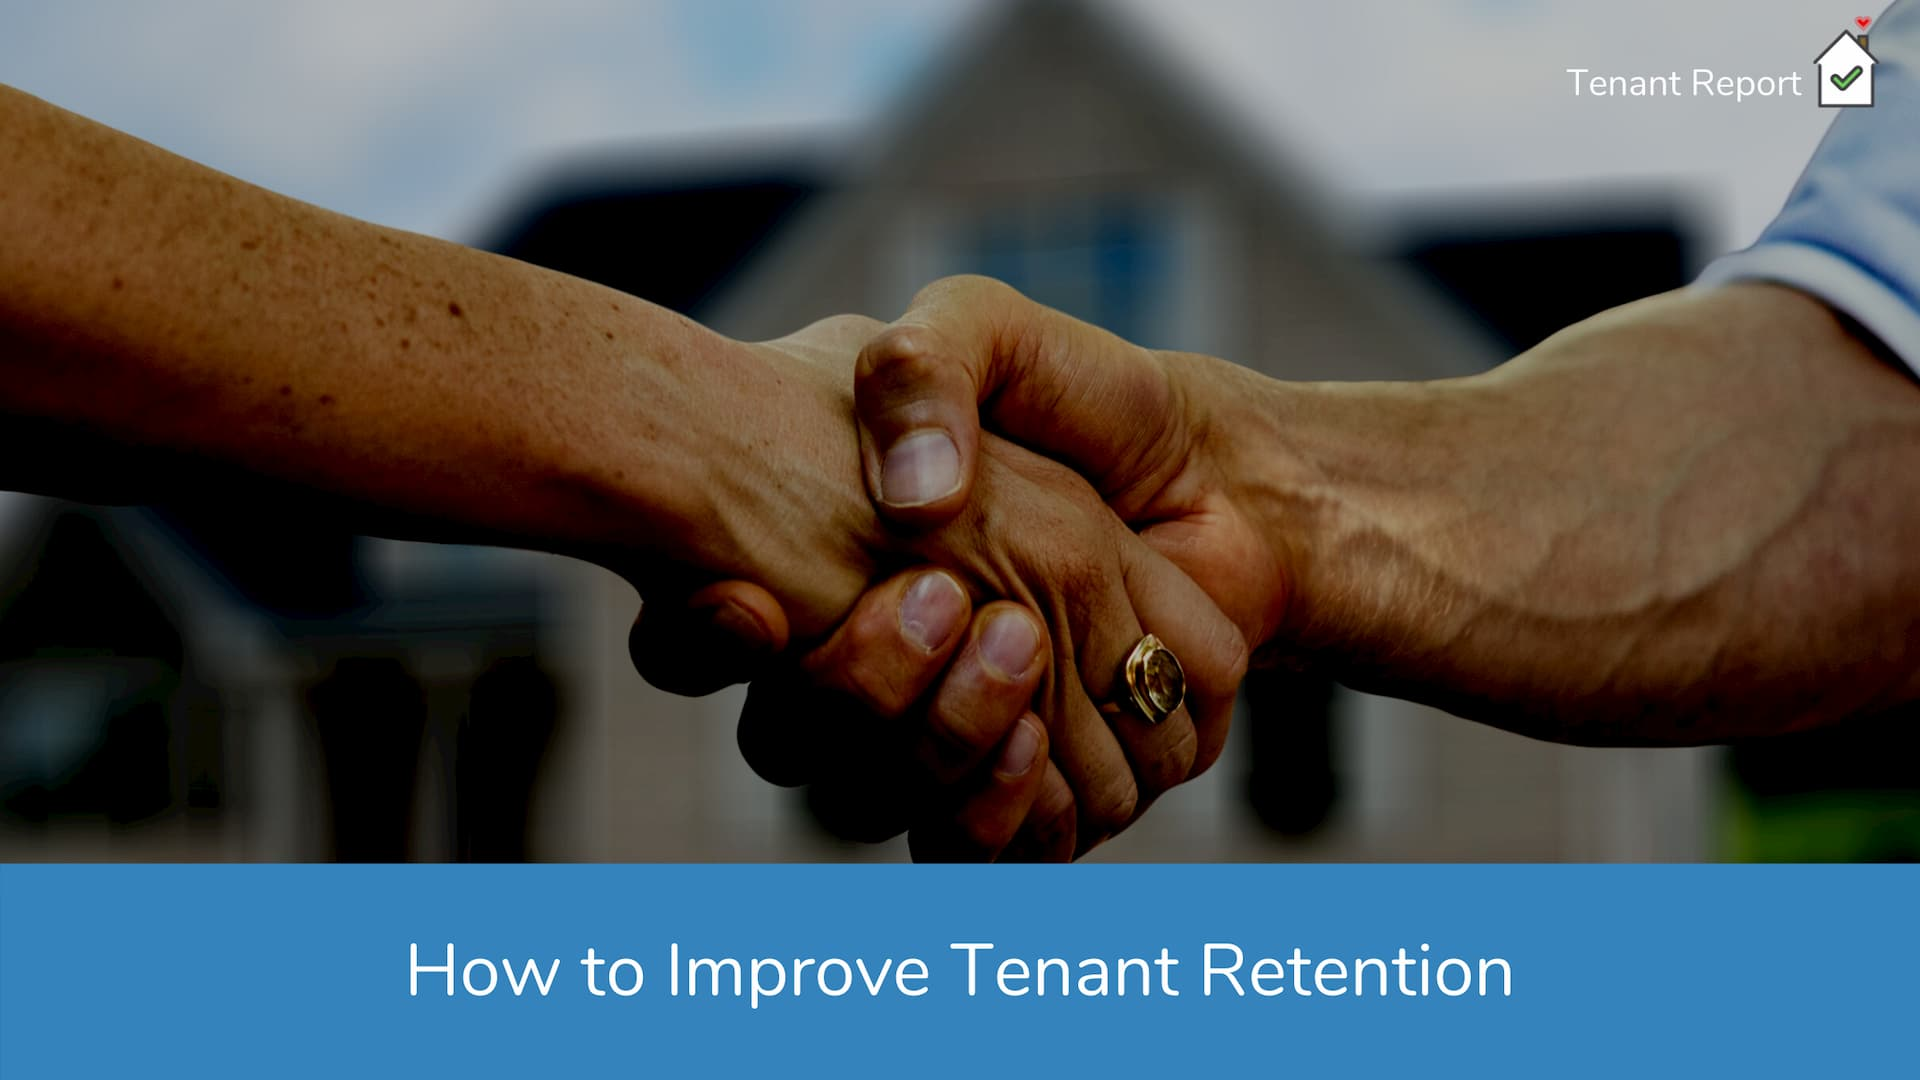 tenant-report-quick-tips-for-improving-tenant-retention